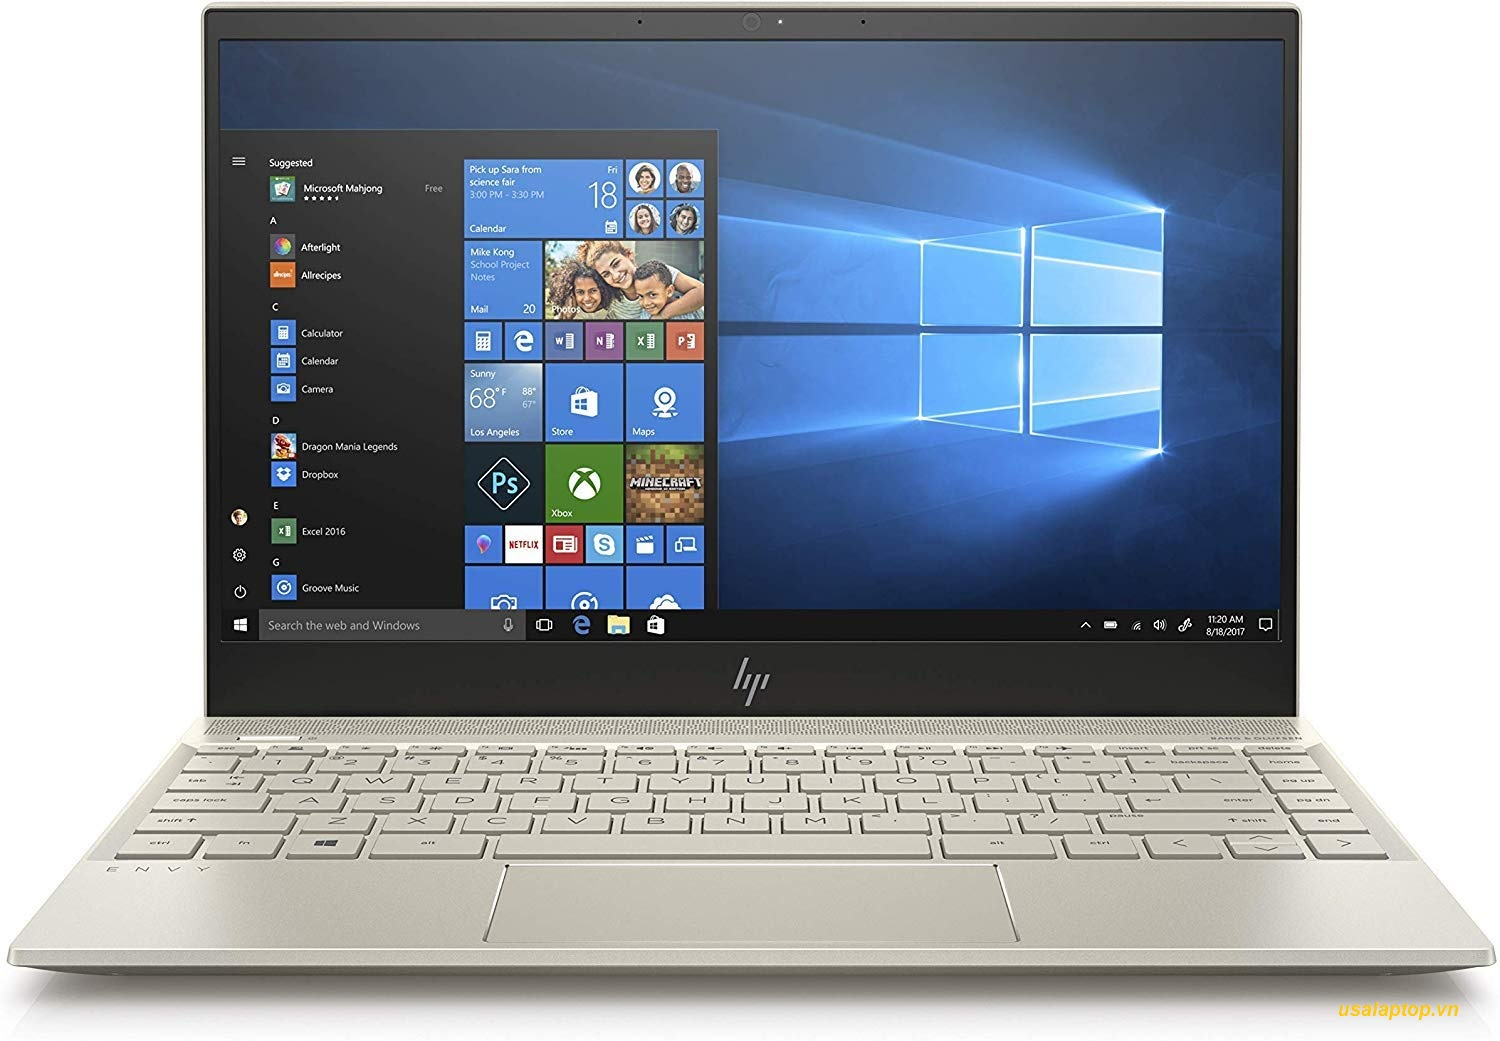 HP Envy 13t-ba000 (intel Core i7 10510U-16Gb-512GB-VGA MX350-13.3 FullHD - Win 10)